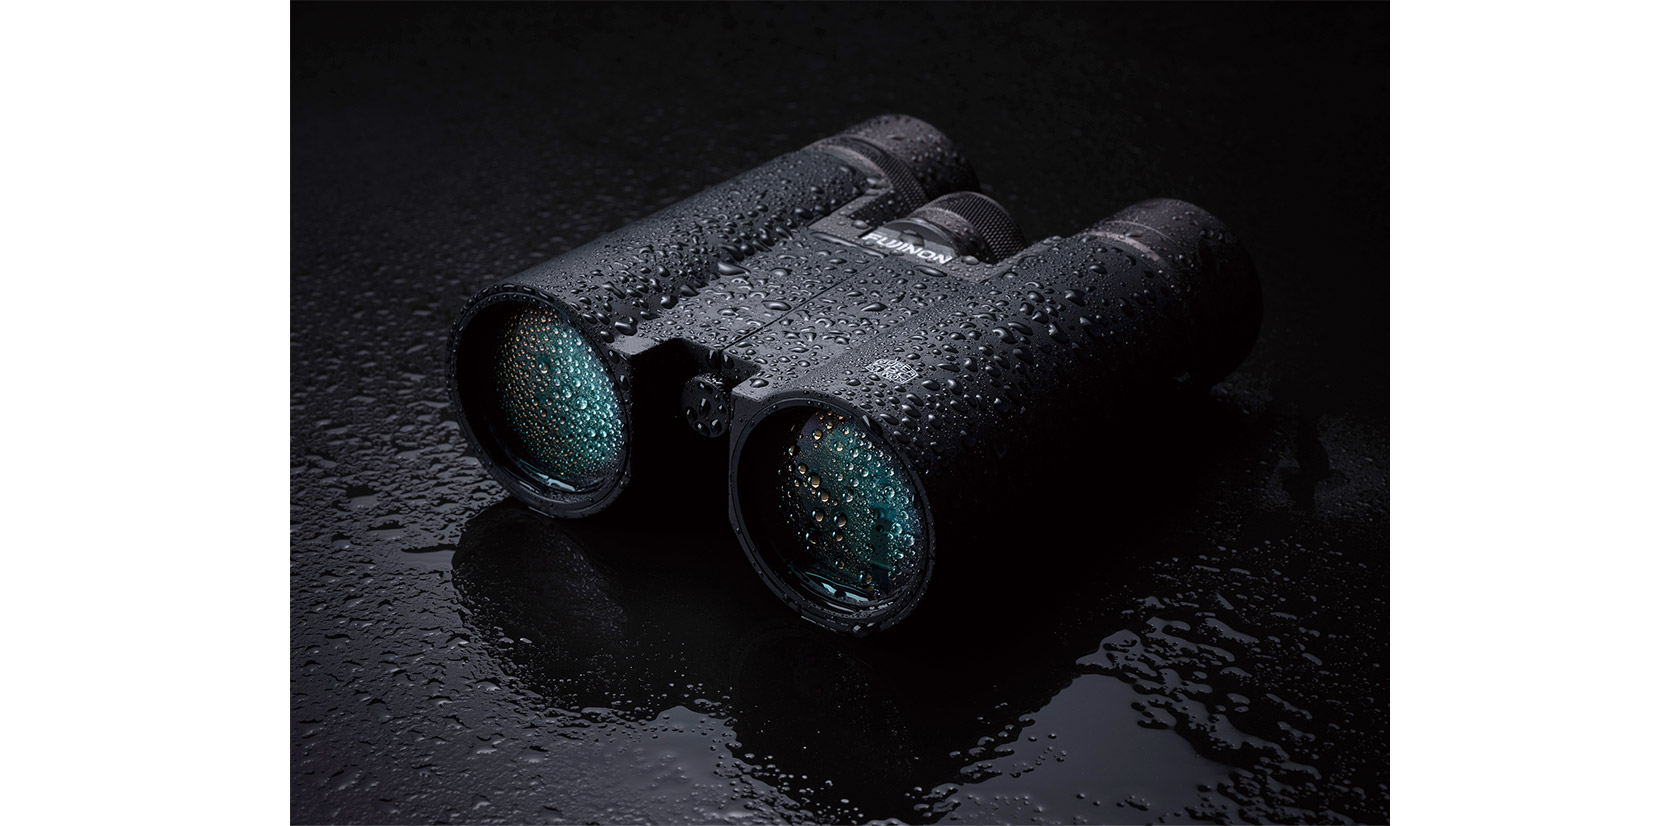 [photo] Black Hyper-Clarity Series binoculars splashed with water droplets